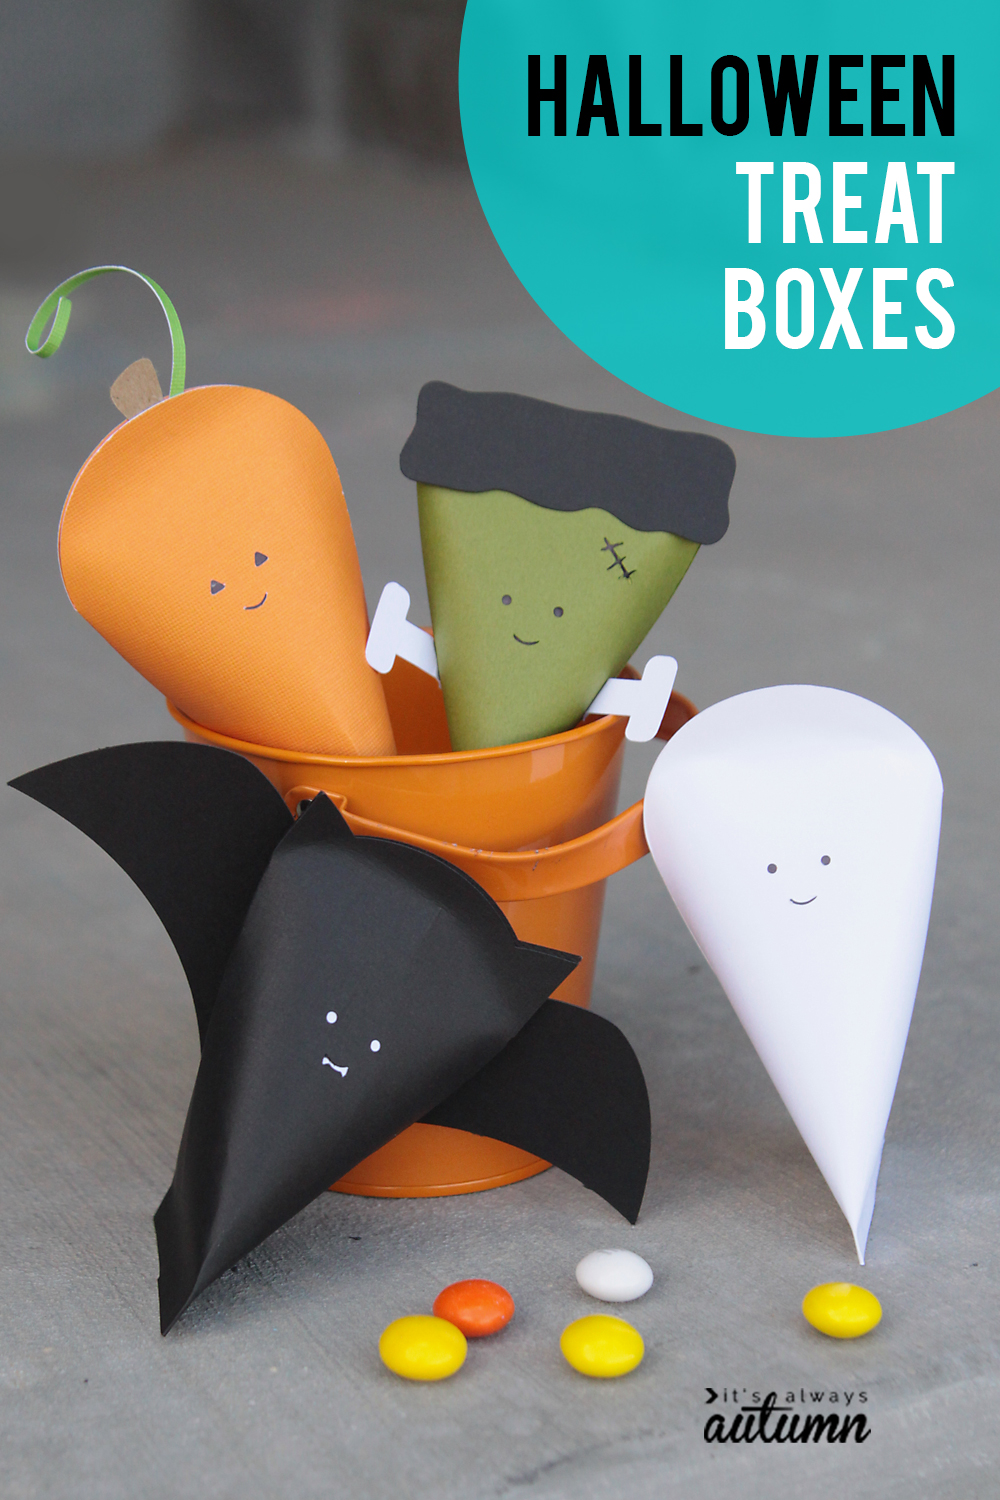 Cute little Halloween treat boxes!